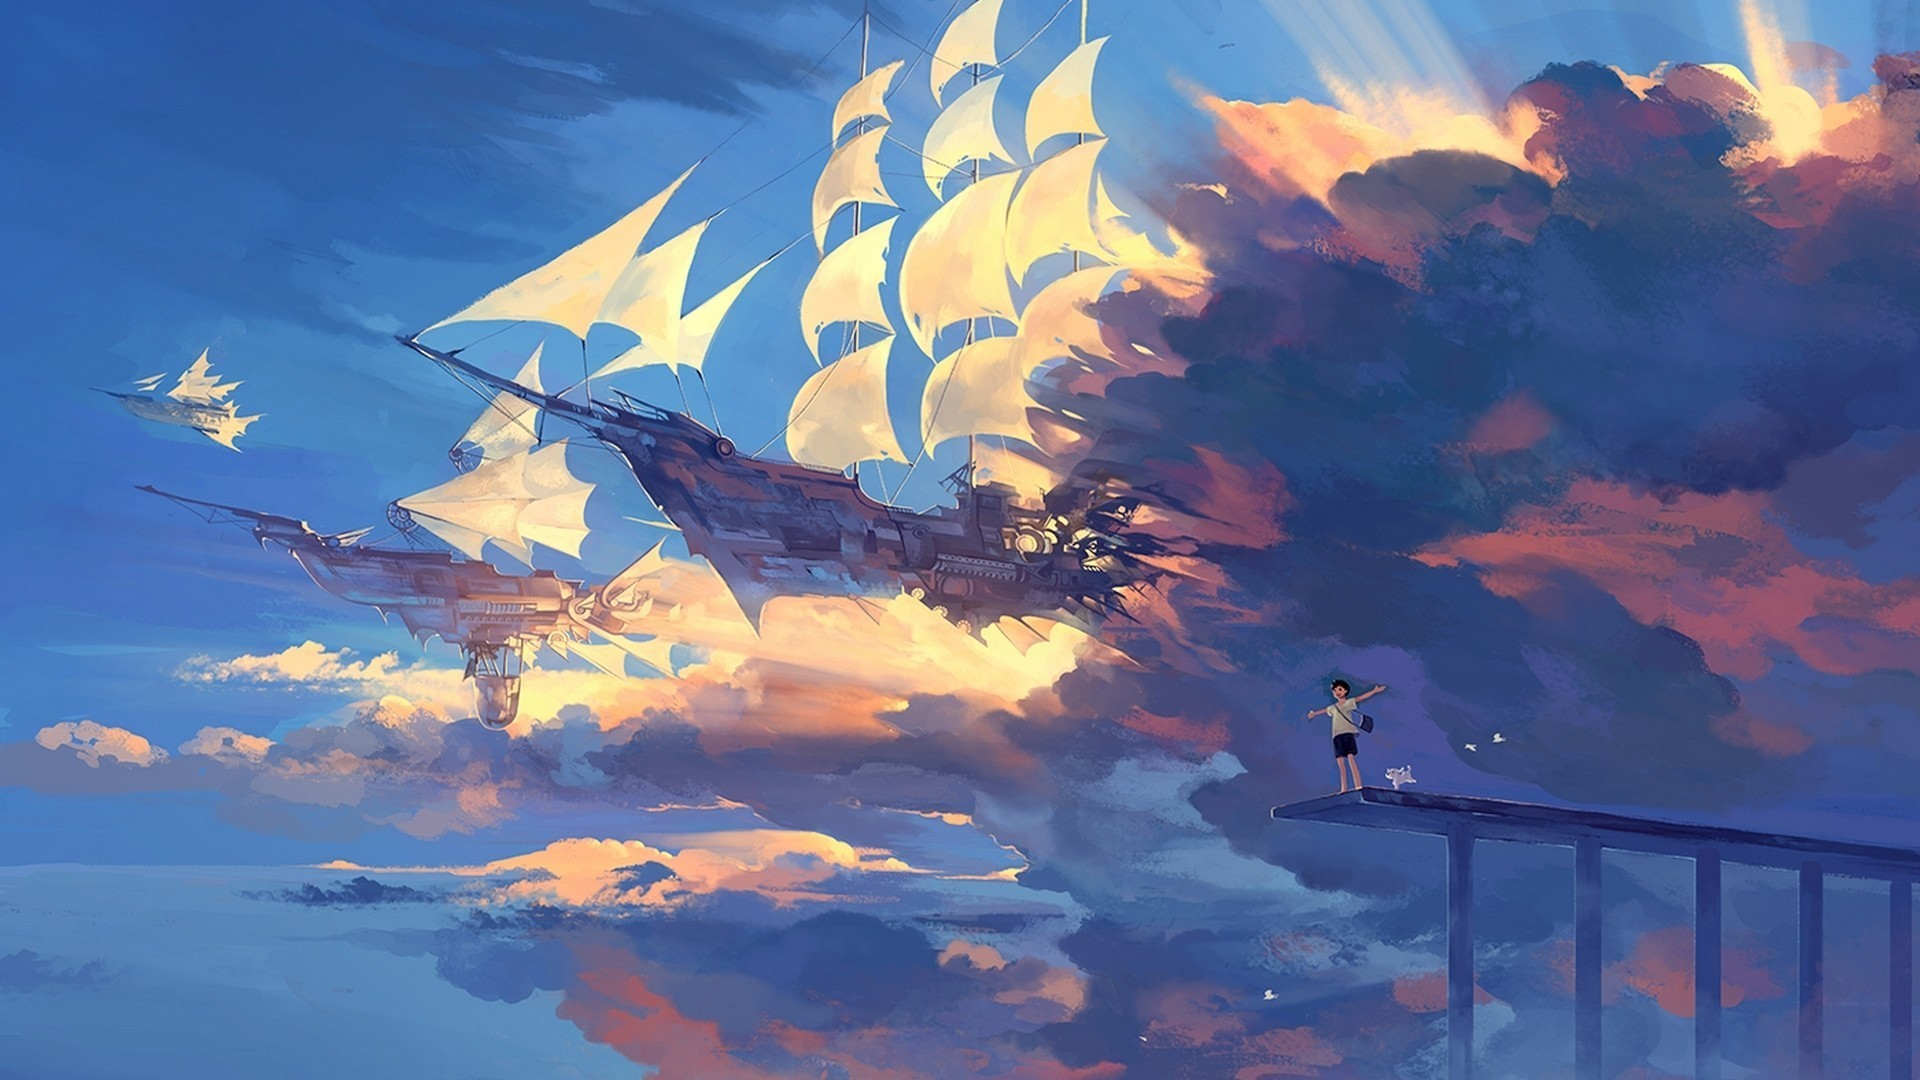 1920x1080 wallpaper.wiki-Hanyijie-sky-scenery-ship-anime-art-